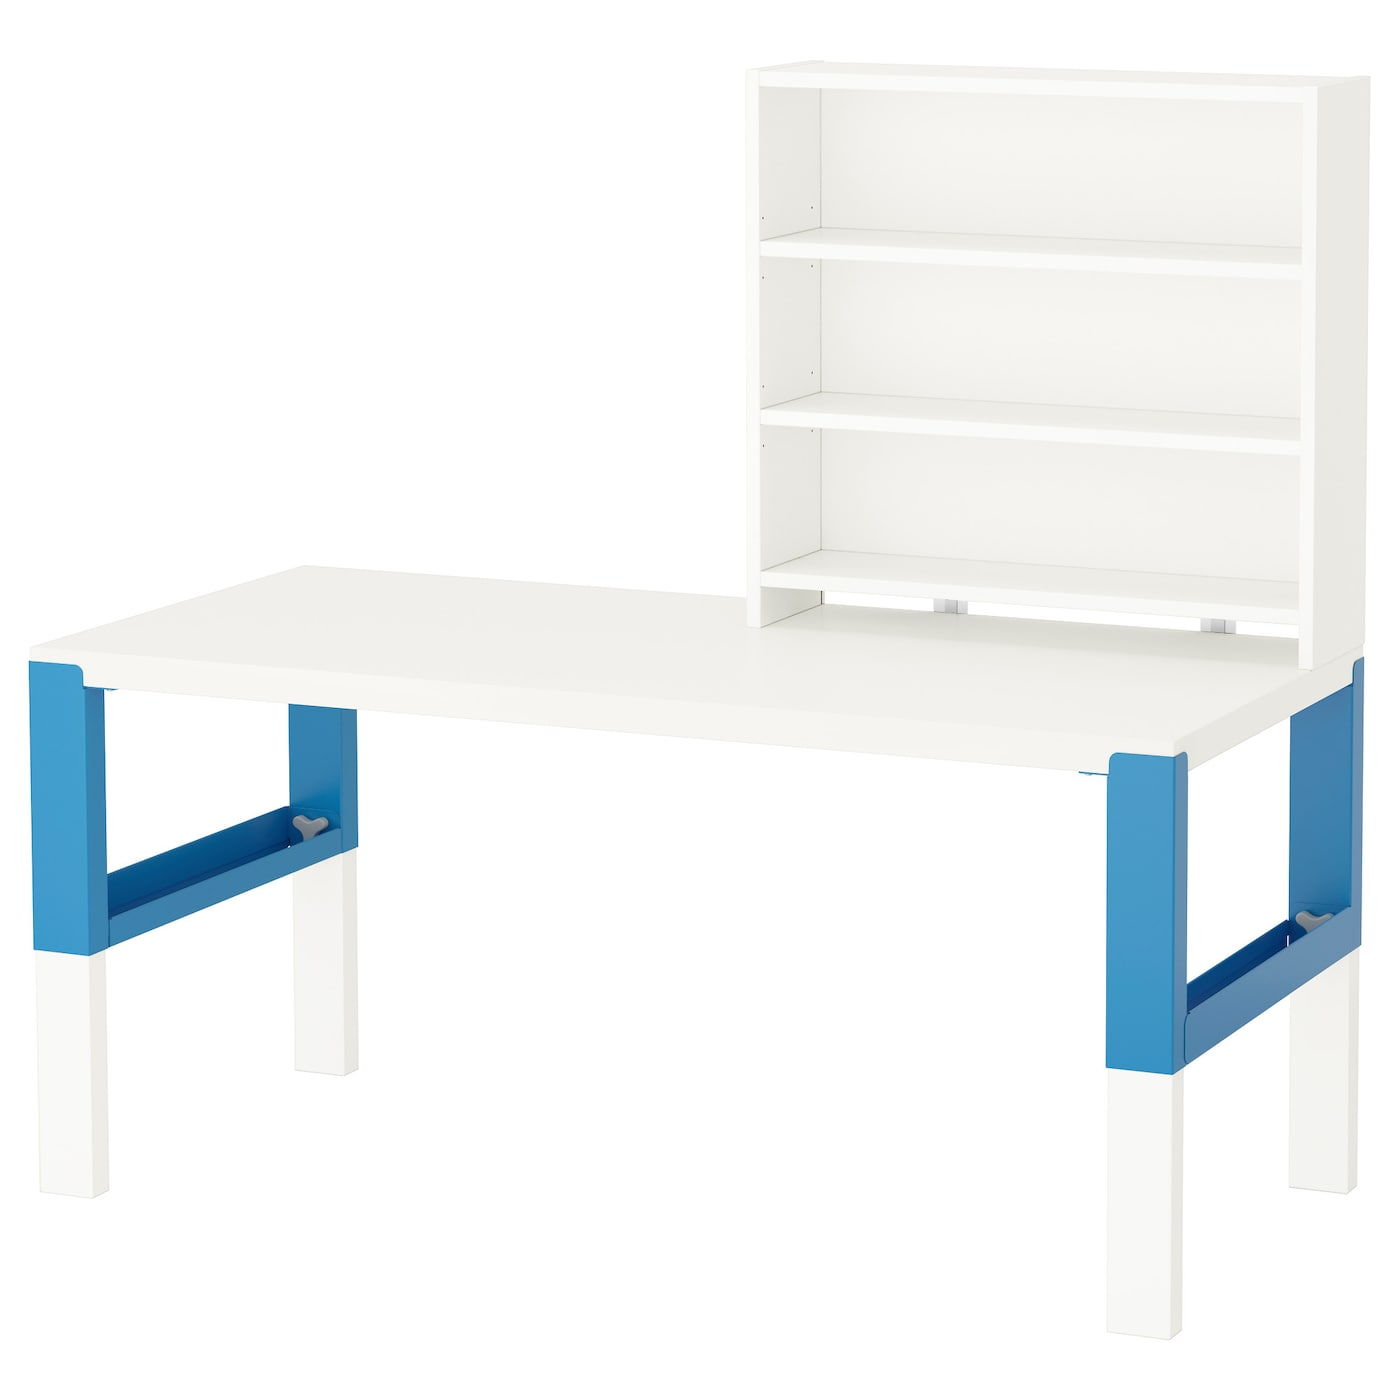 p hl bureau avec tablette blanc bleu 128 x 58 cm ikea. Black Bedroom Furniture Sets. Home Design Ideas